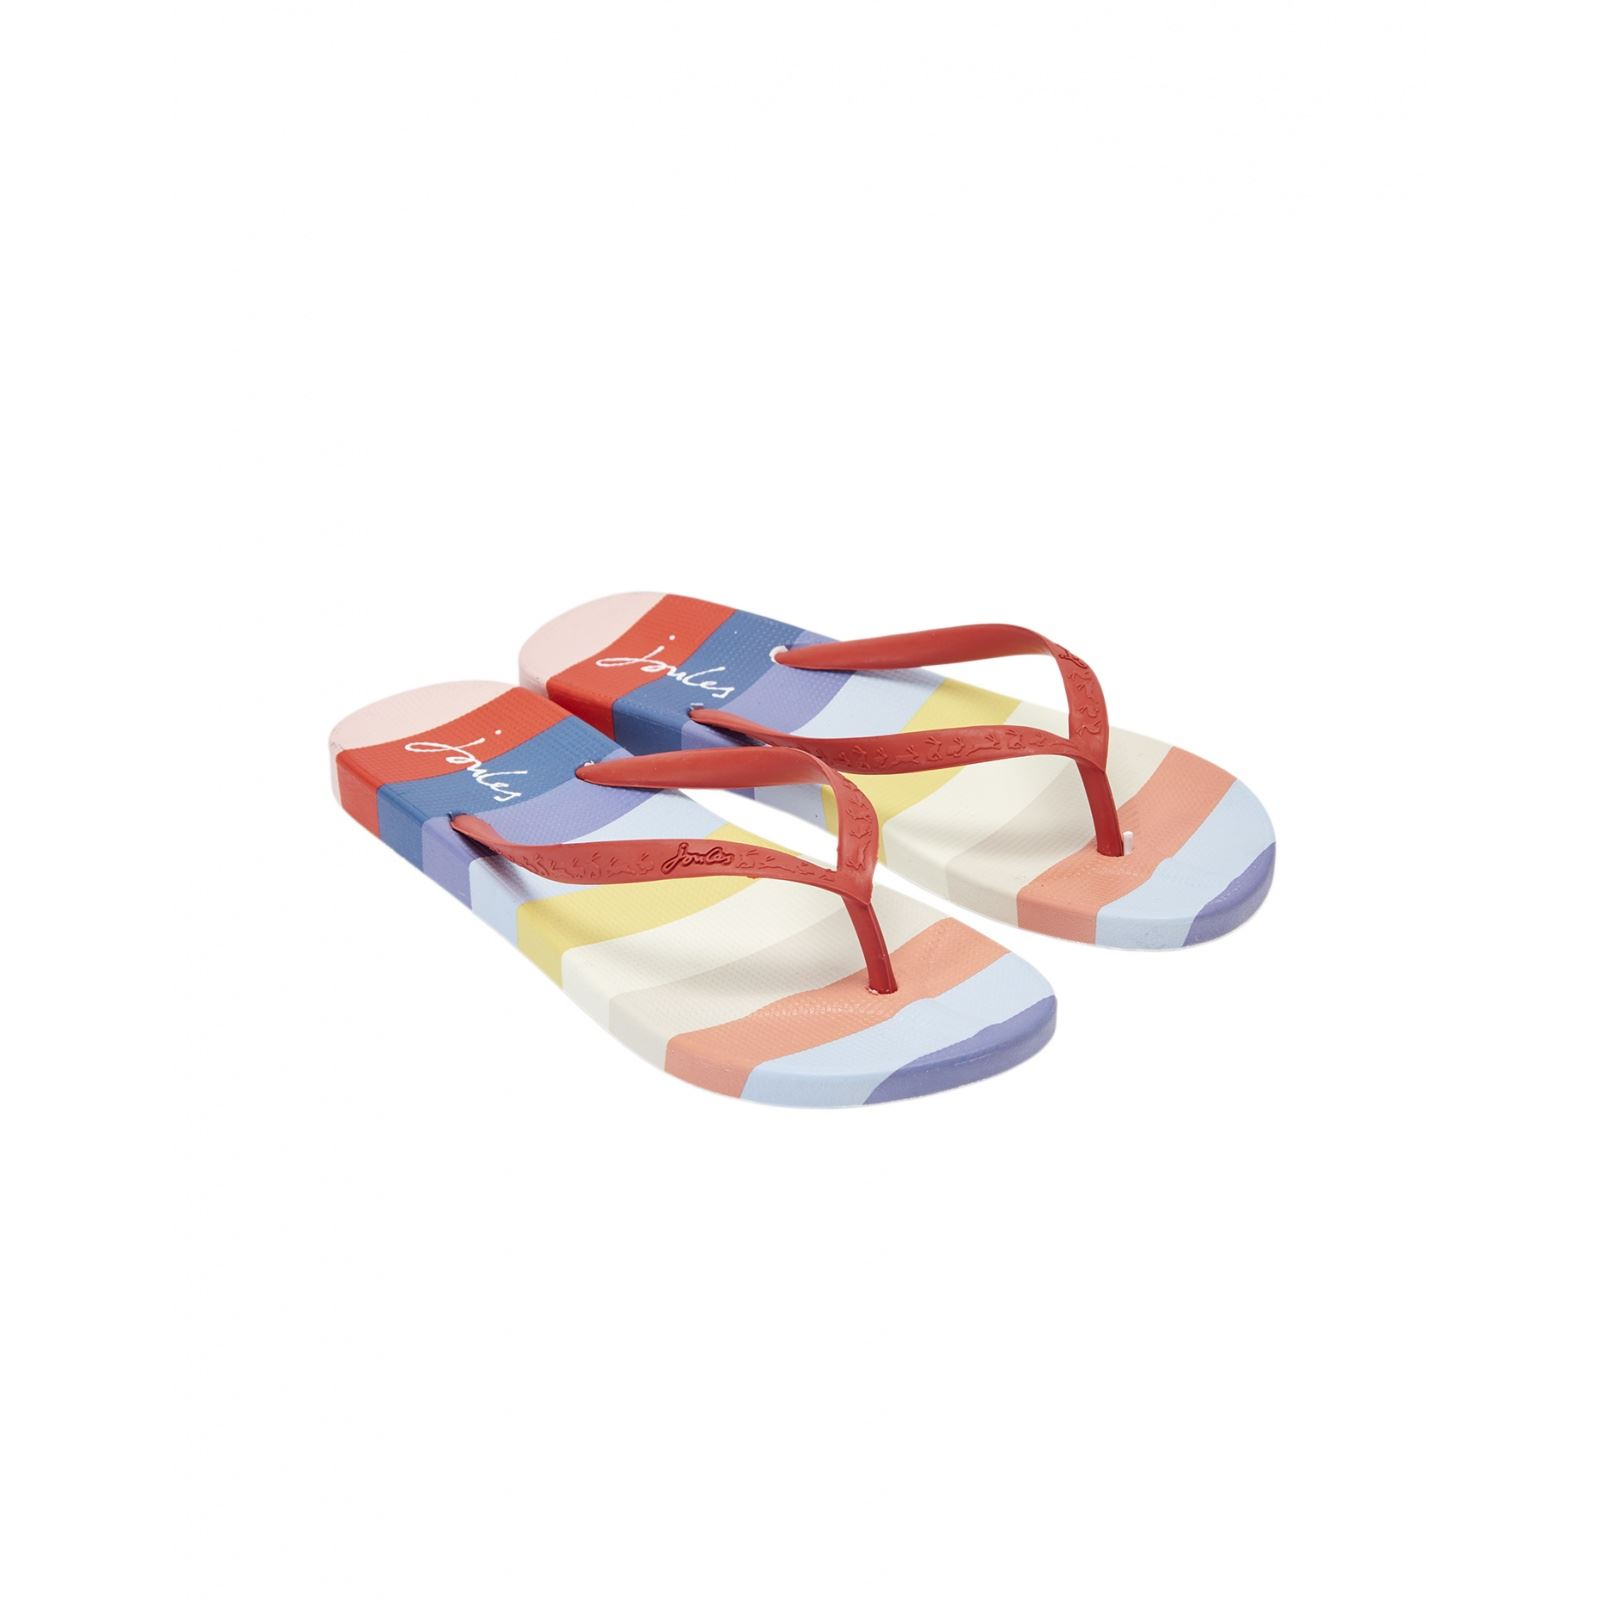 Joules-Flip-Flops-Sandals-Summer-Flip-Flop-NEW-2019-COLOURS thumbnail 10